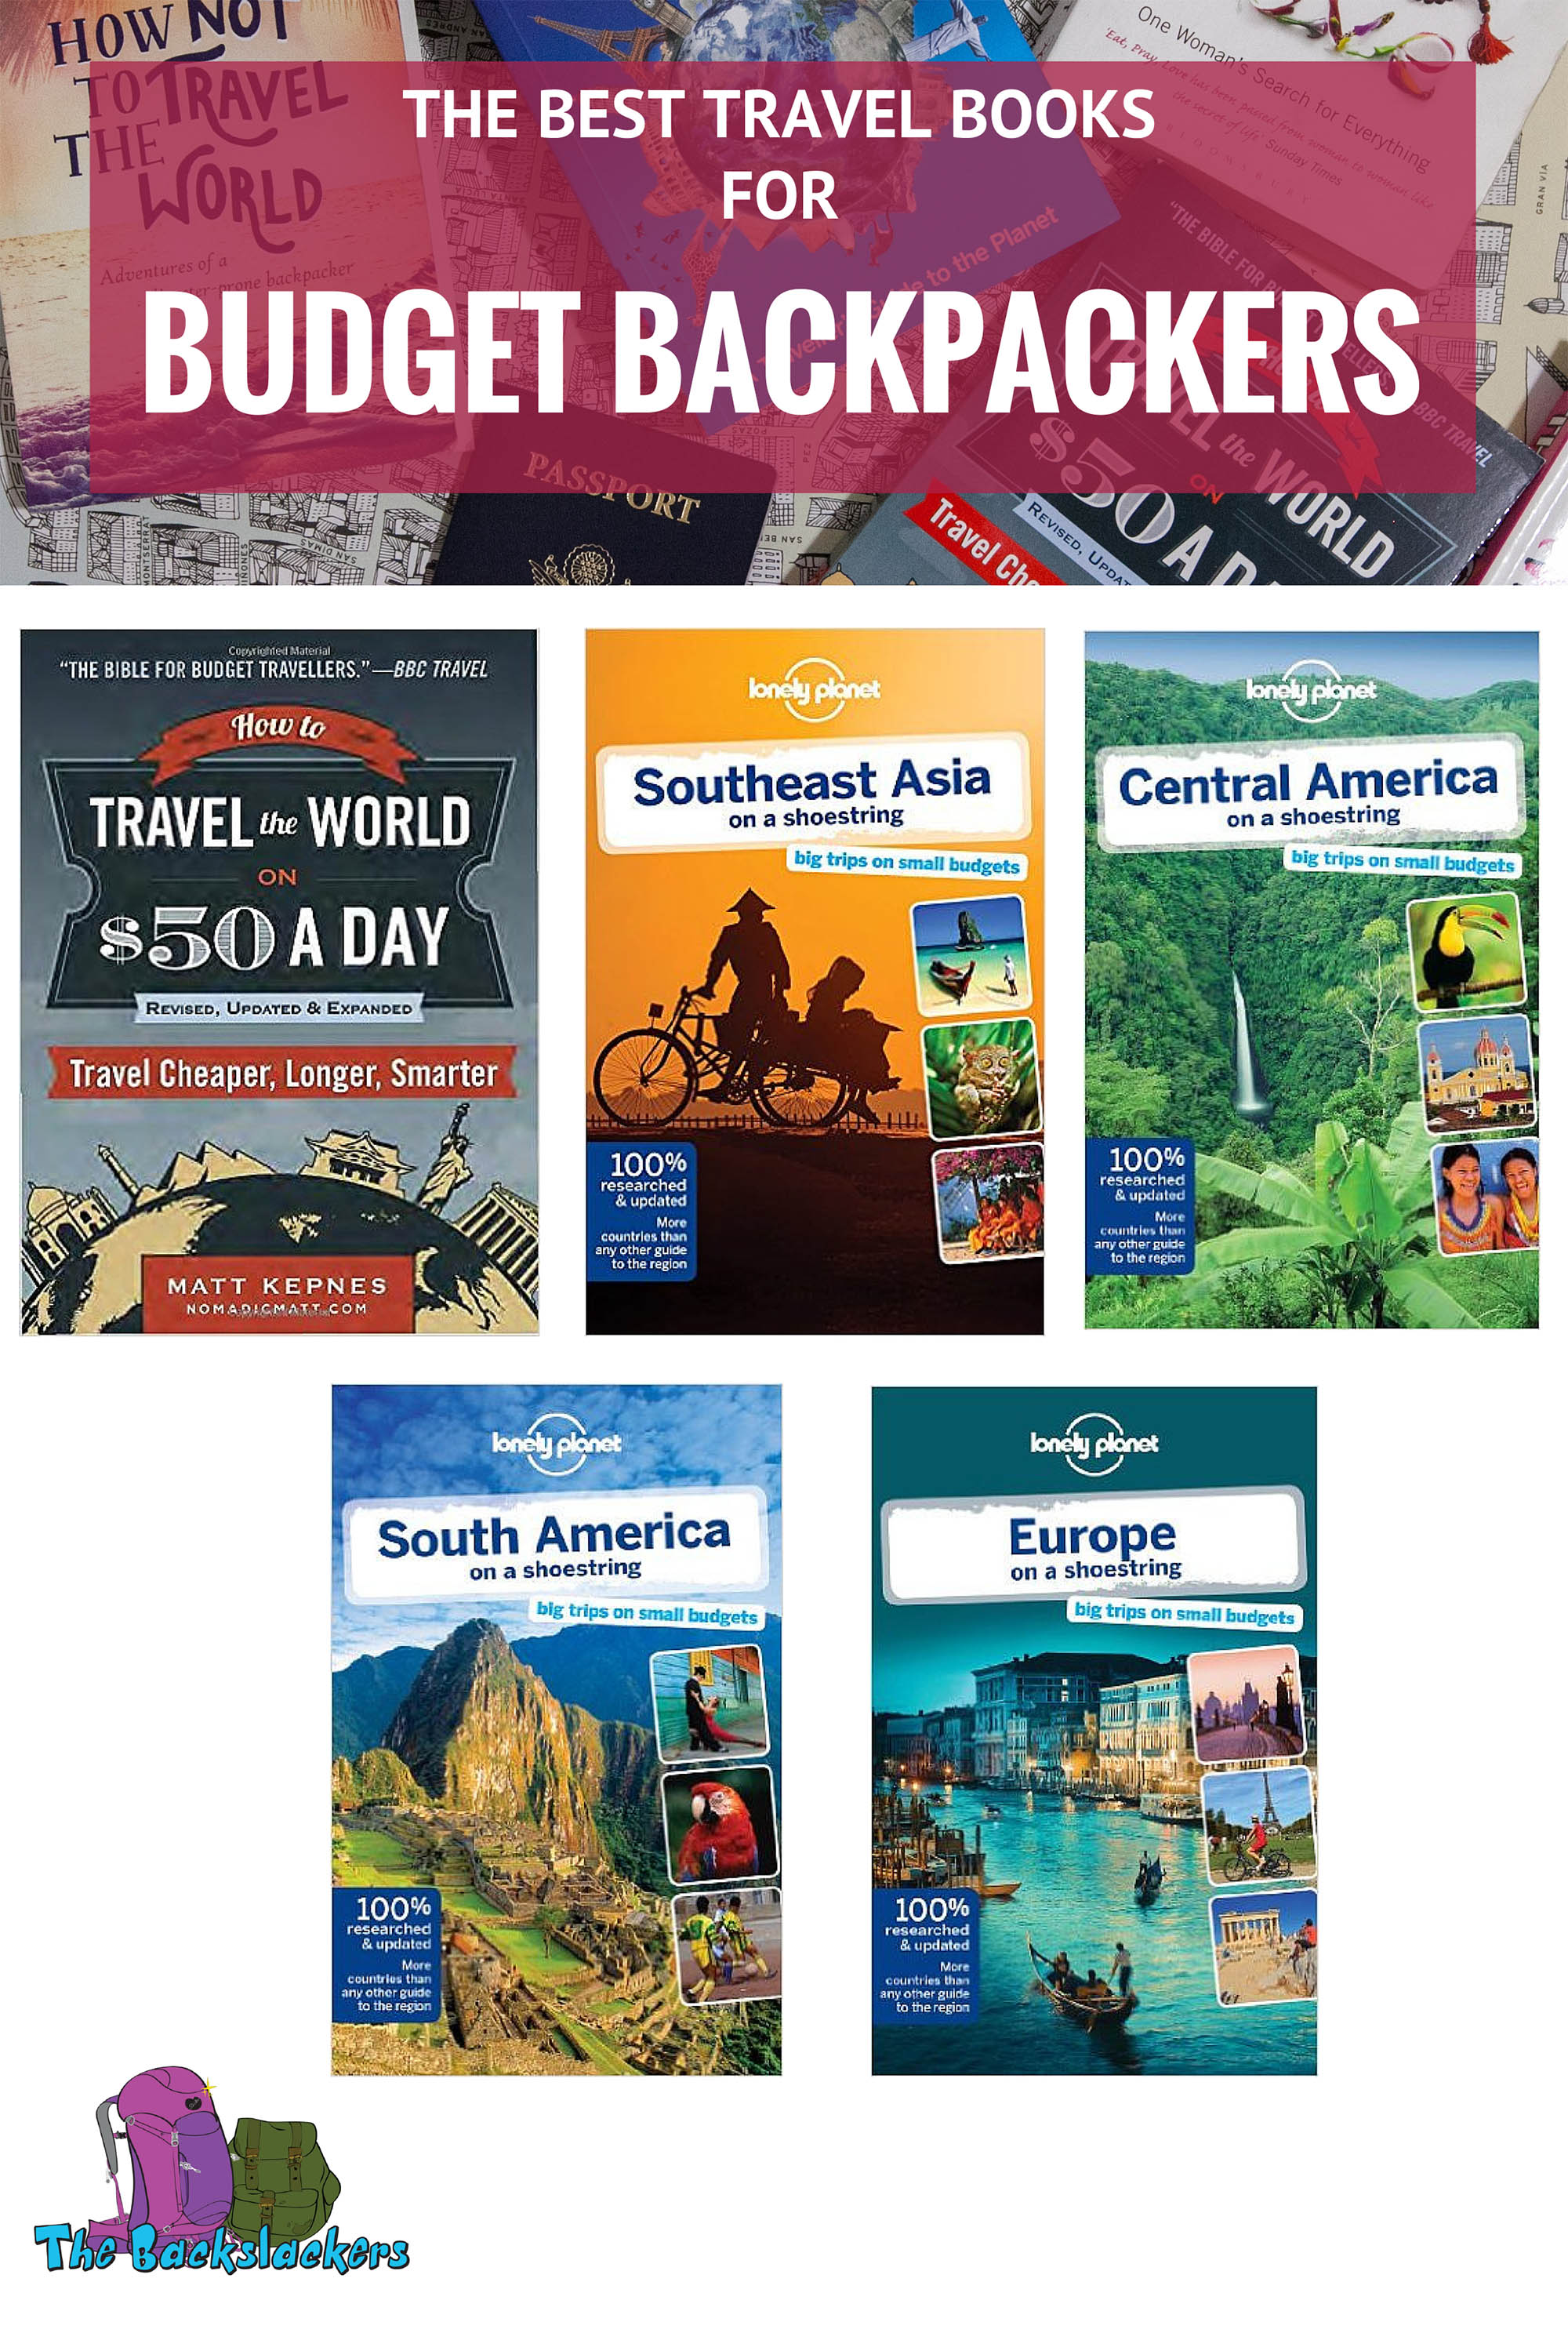 Best Travel Books for Budget Backpackers featuring Nomadic Matt's How To Travel The World on $50 a Day, Lonely Planet's Southeast Asia on a Shoestring, Lonely Planet's Central America on a Shoestring, Lonely Planet's South America on a Shoestring, and Lonely Planet's Europe on a Shoestring.